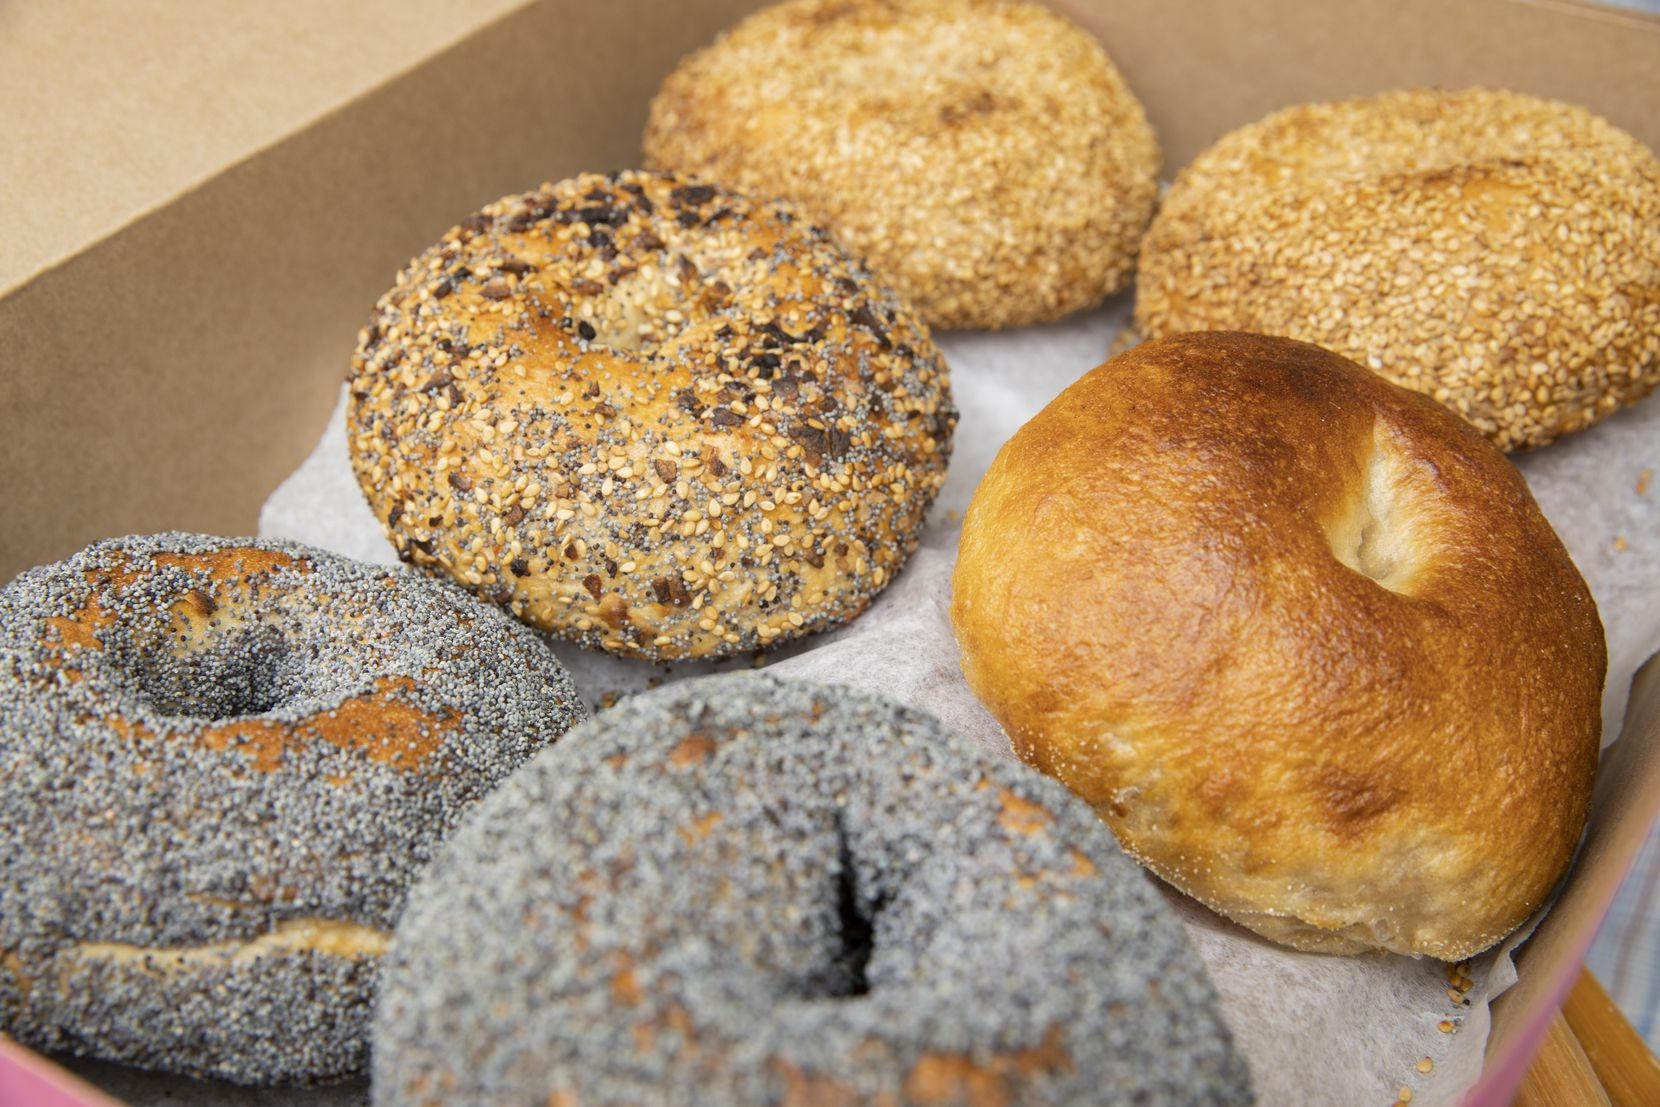 Classic plain, poppy seed, sesame seed and the everything bagel from Lenore's Bagels